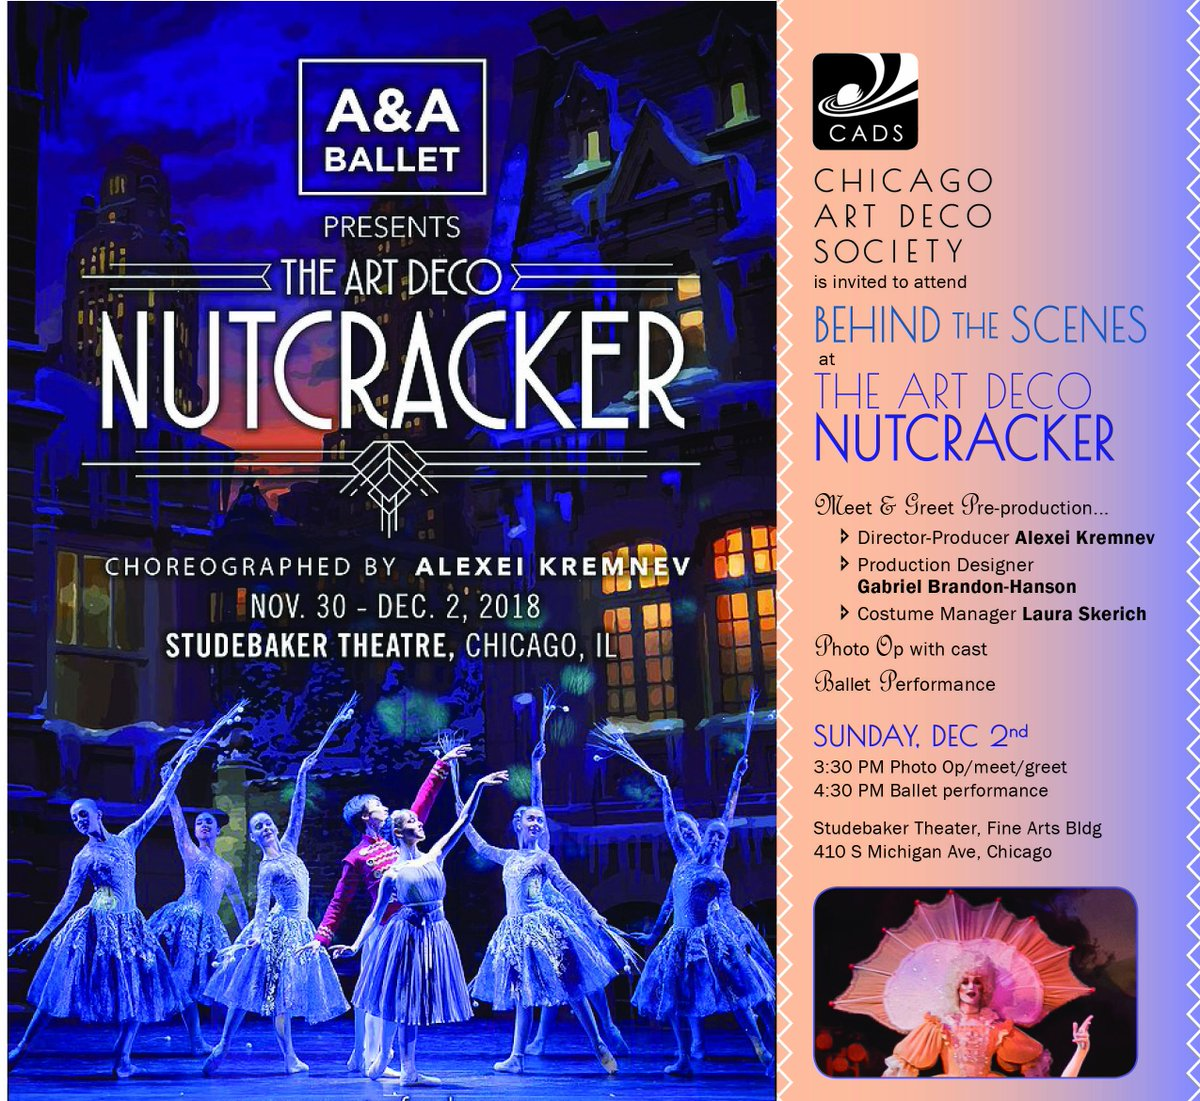 Dont forget, Chicago Art Deco Society members can register for a behind the scenes meet and greet and buy tickets to a performance of the Art Deco Nutcracker on December 2! You must register for the Behind the Scenes by this Sunday, November 25! Chicagodeco.org/events for more.